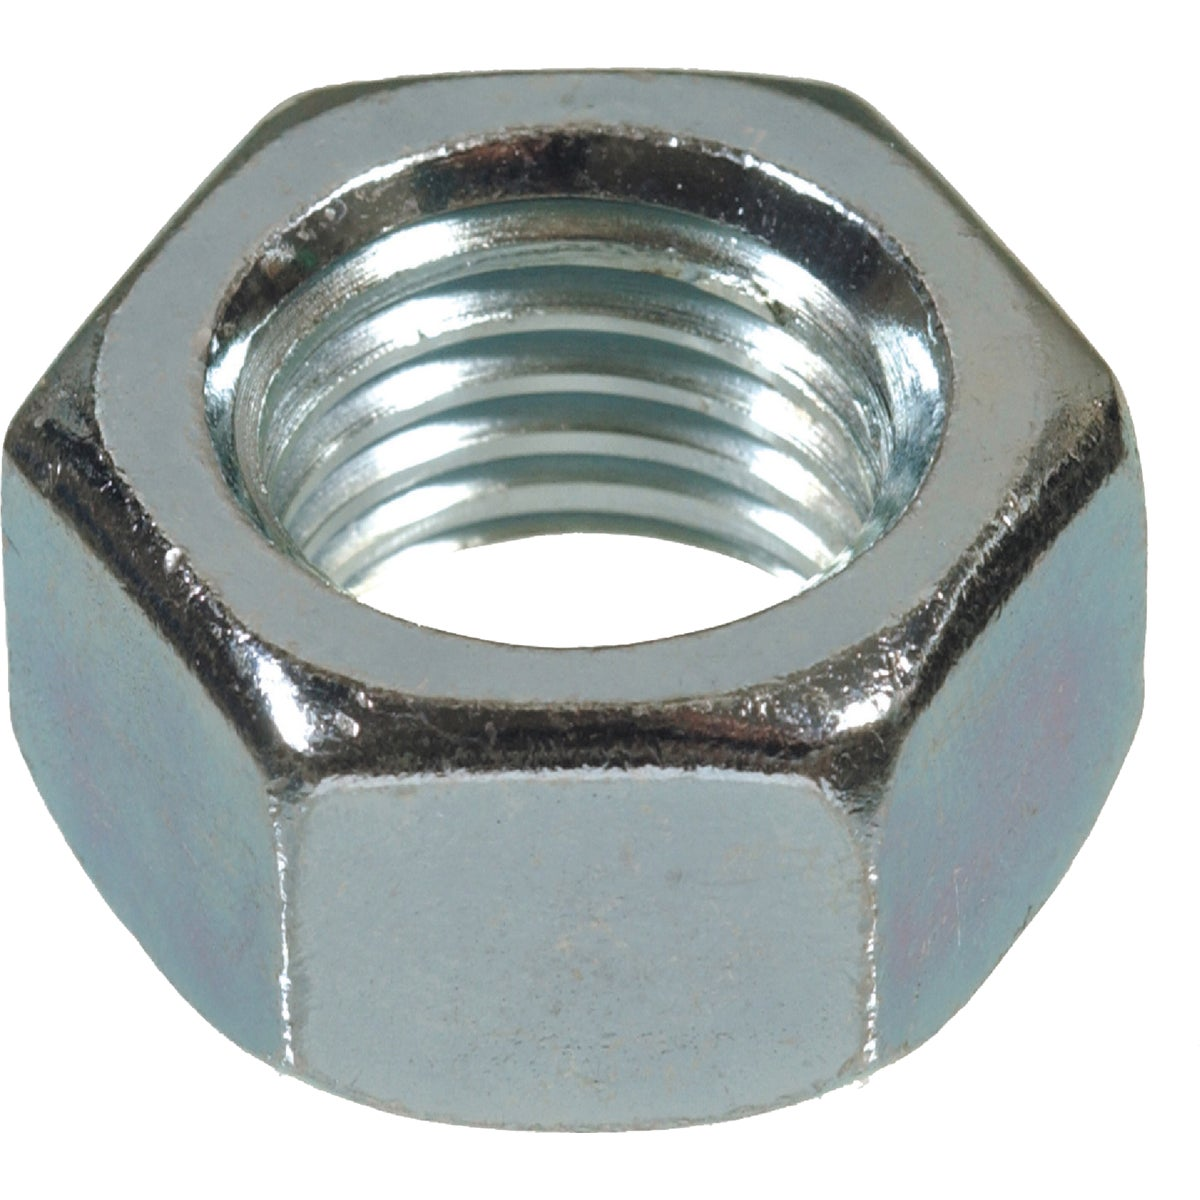 1/4-20 HEX NUT - 6212 by Hillman Fastener